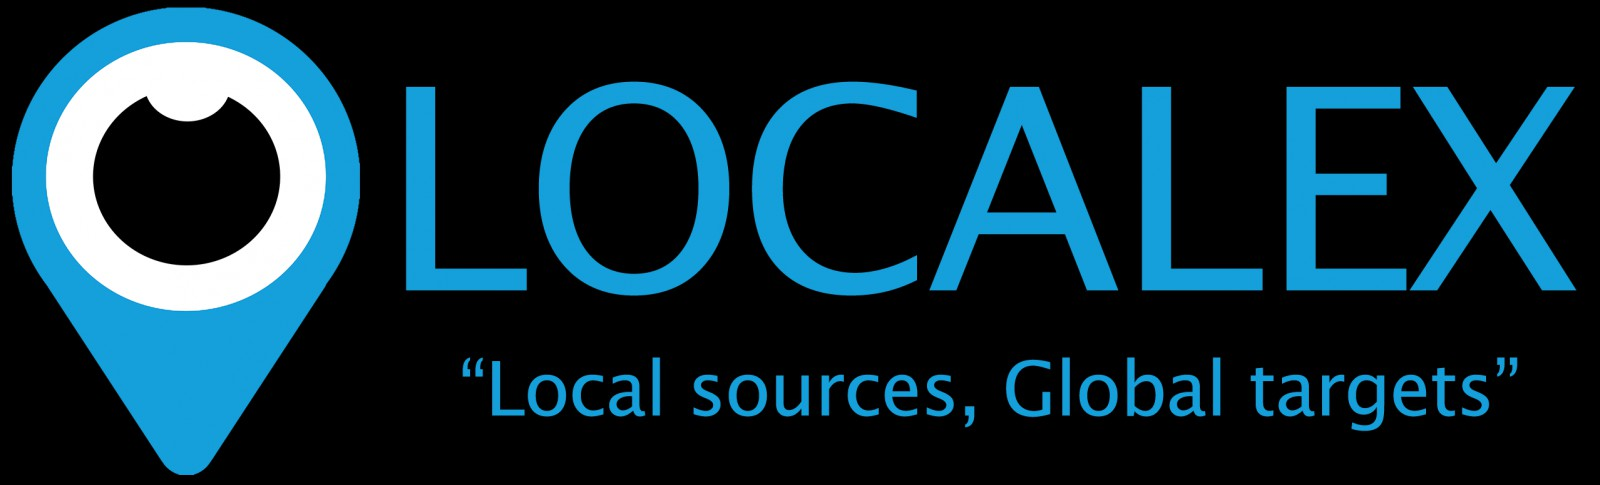 Local sources, Global targets